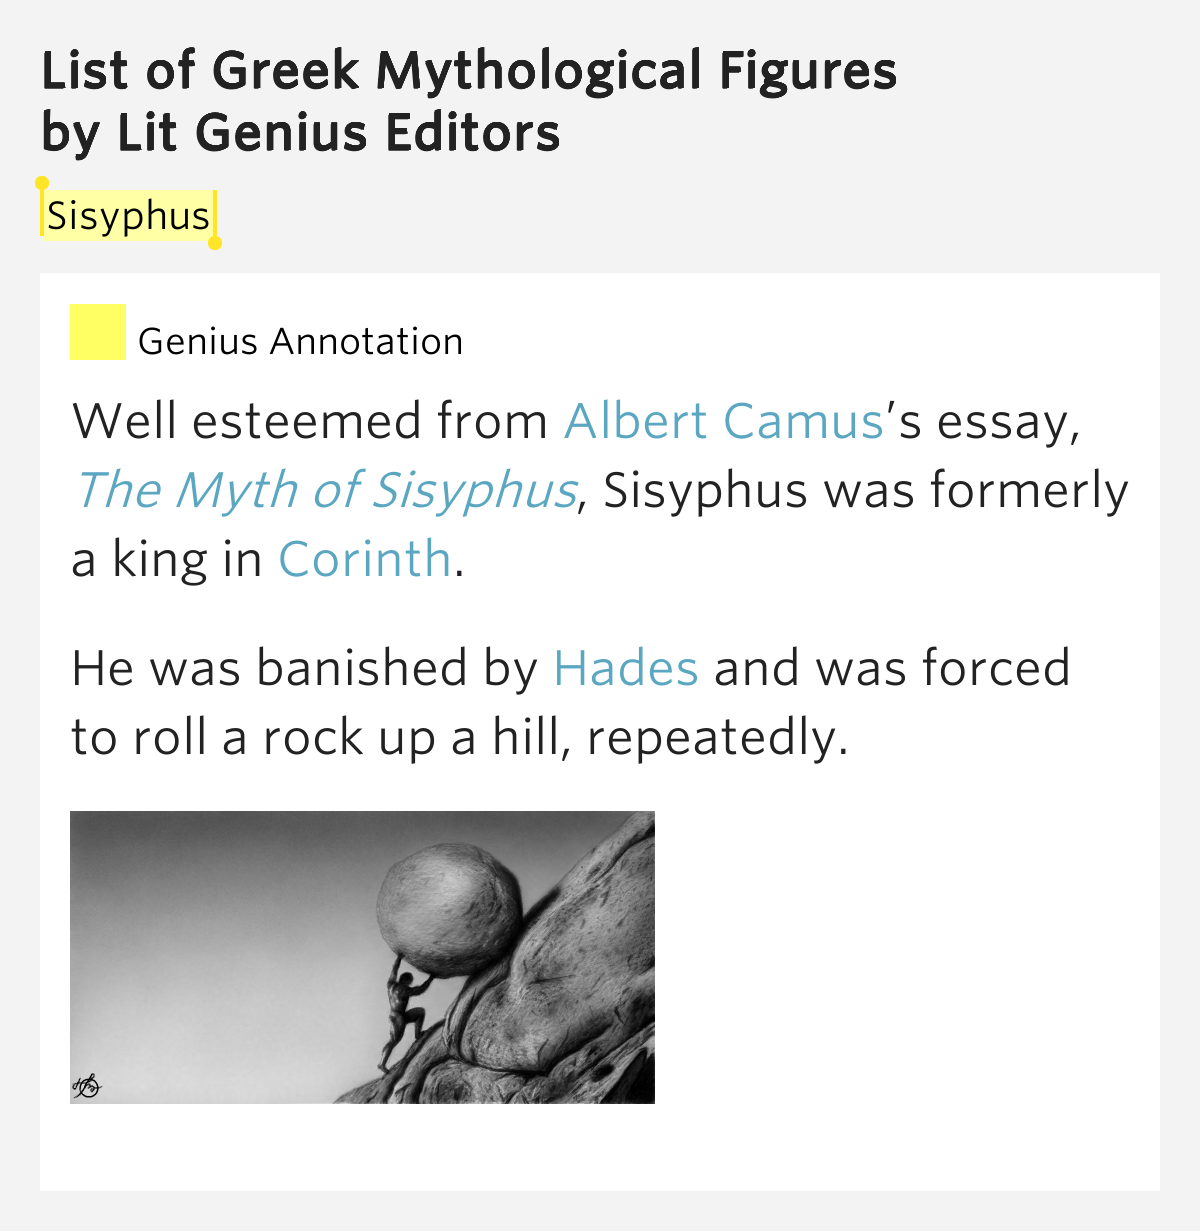 the myth of sisyphus essay summary This lesson looks at how an existentialist perspective would shed light on josh's situation we'll focus on the essay the myth of sisyphus by albert lesson summary.